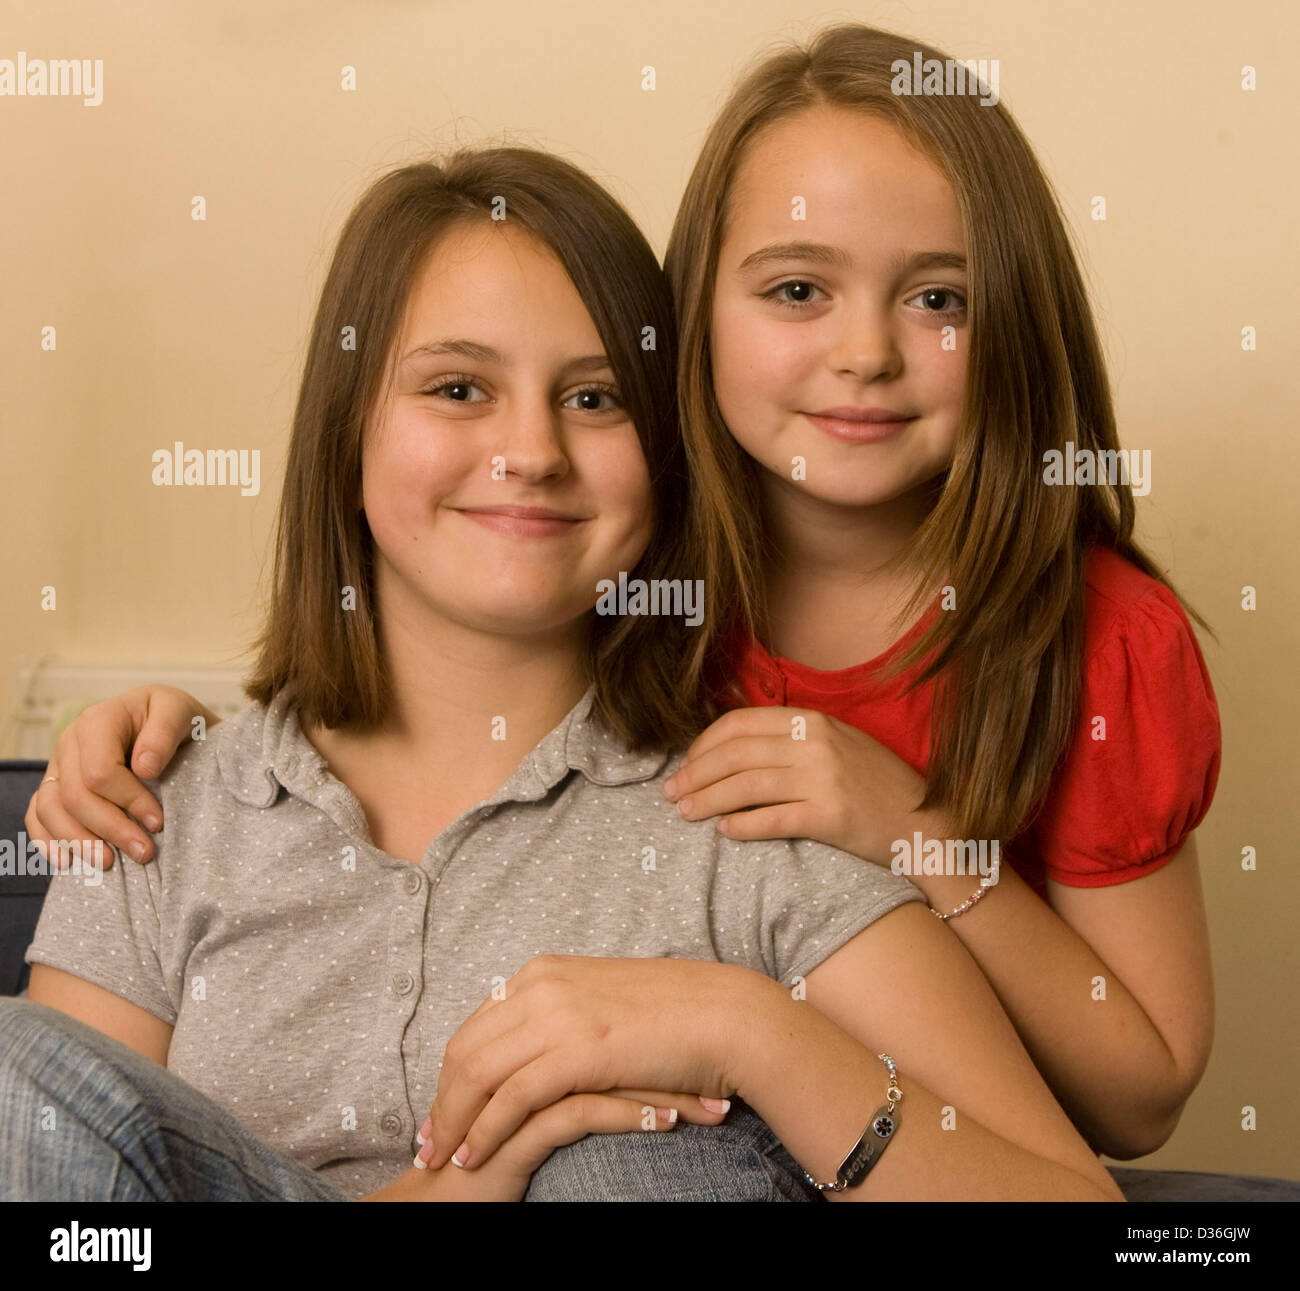 Sisters Chloe and Evie Church who suffer from a rare condition called Long QT Syndrome. - Stock Image